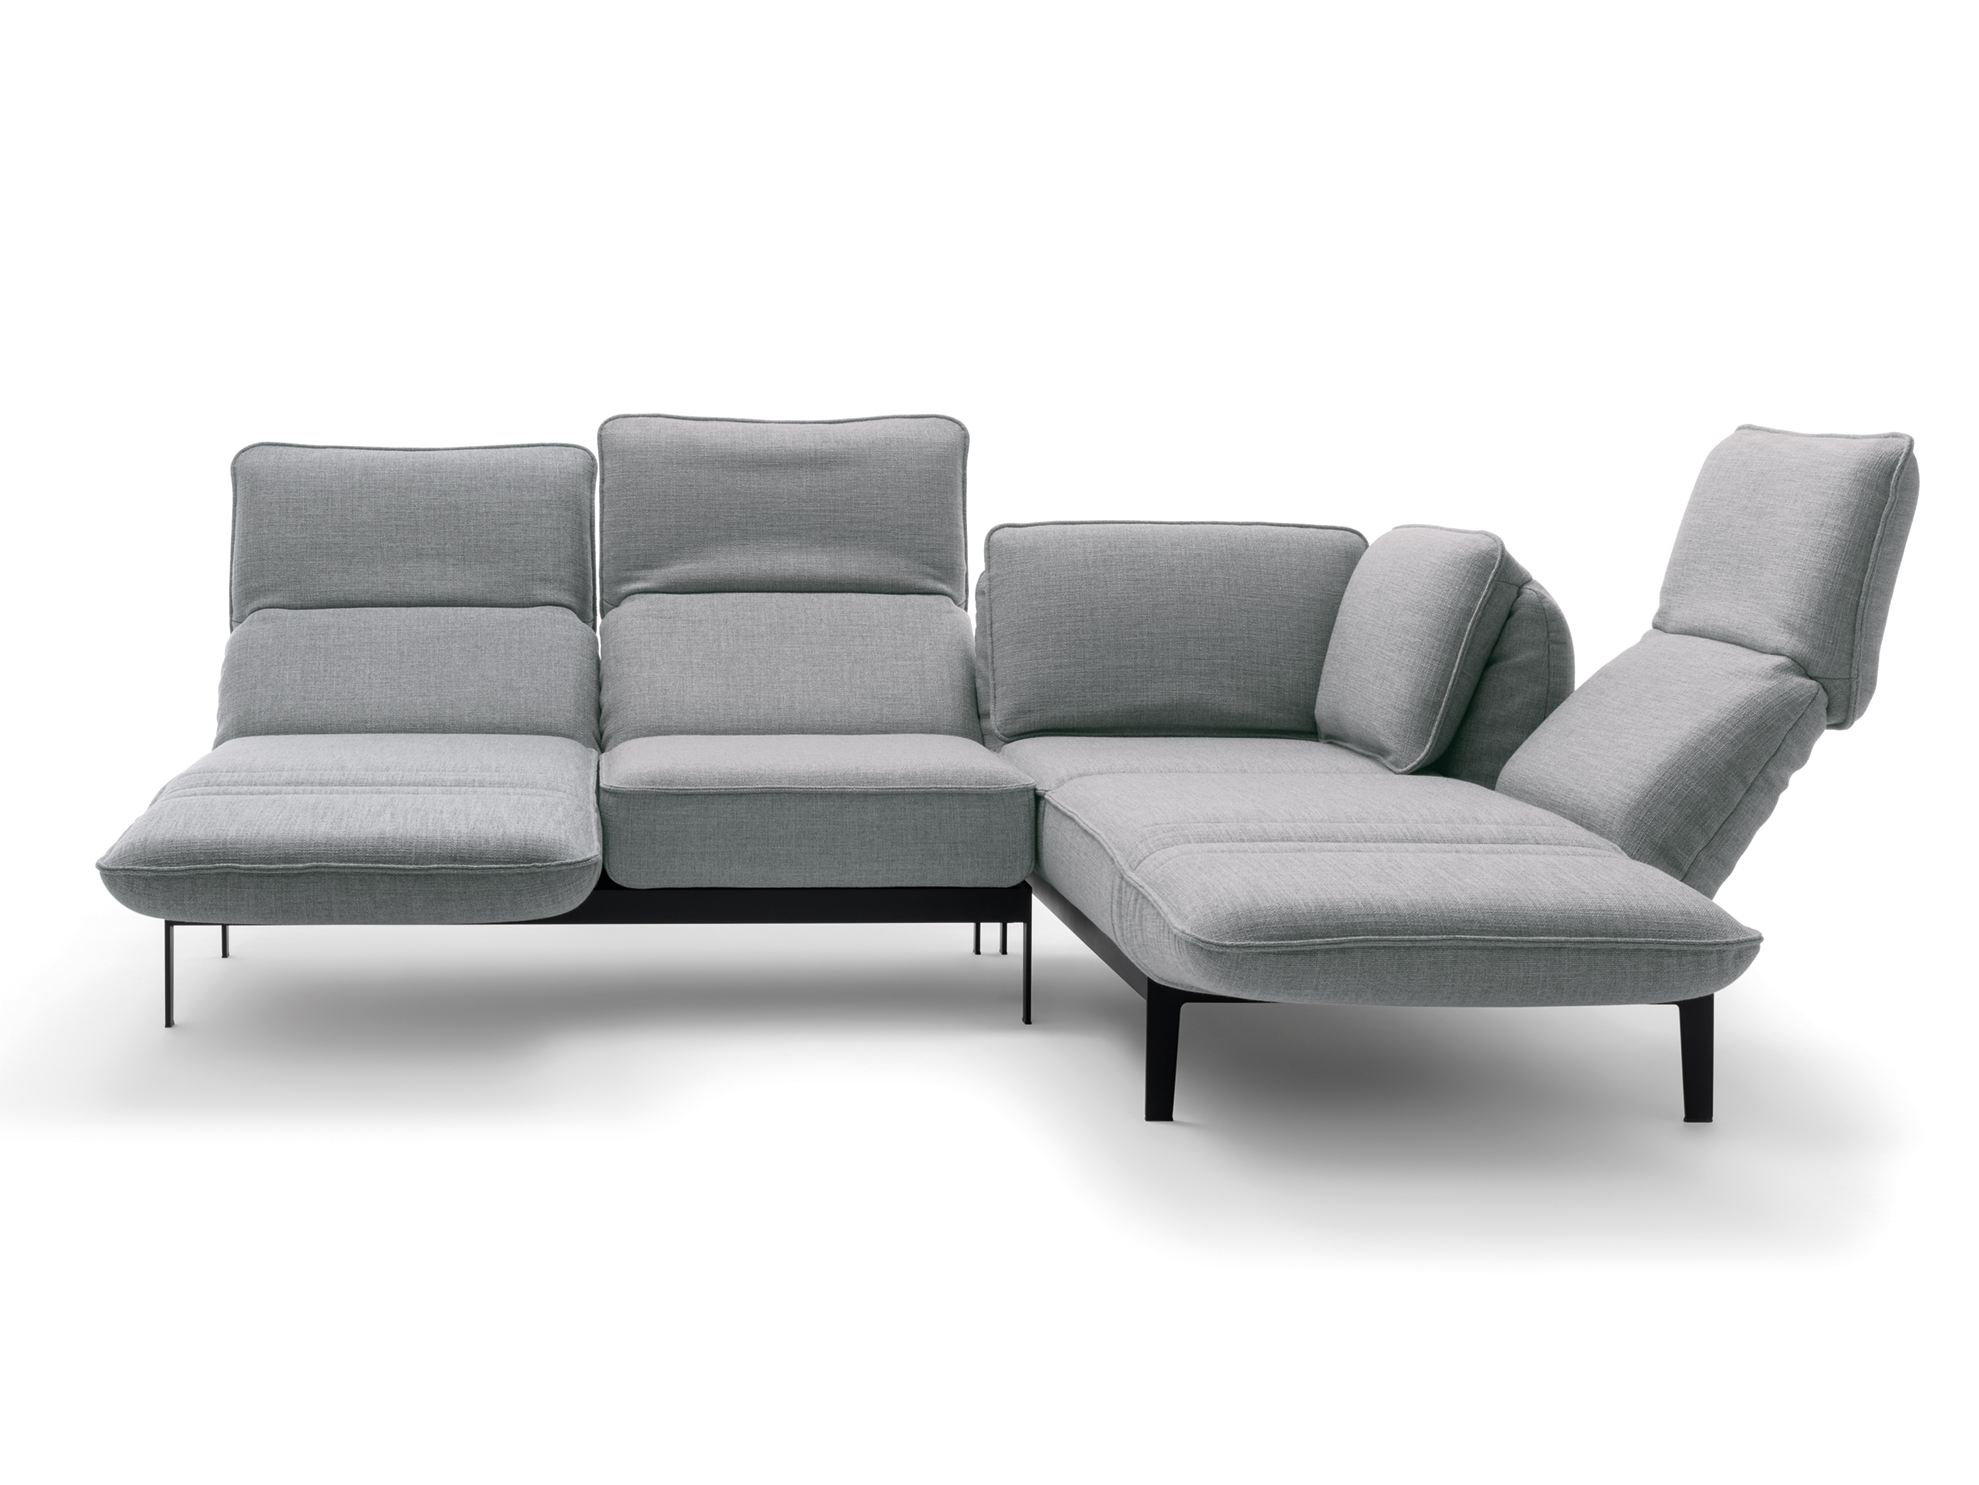 Benz Corner Sofa Mera Corner Sofa Mera Collection By Rolf Benz Design